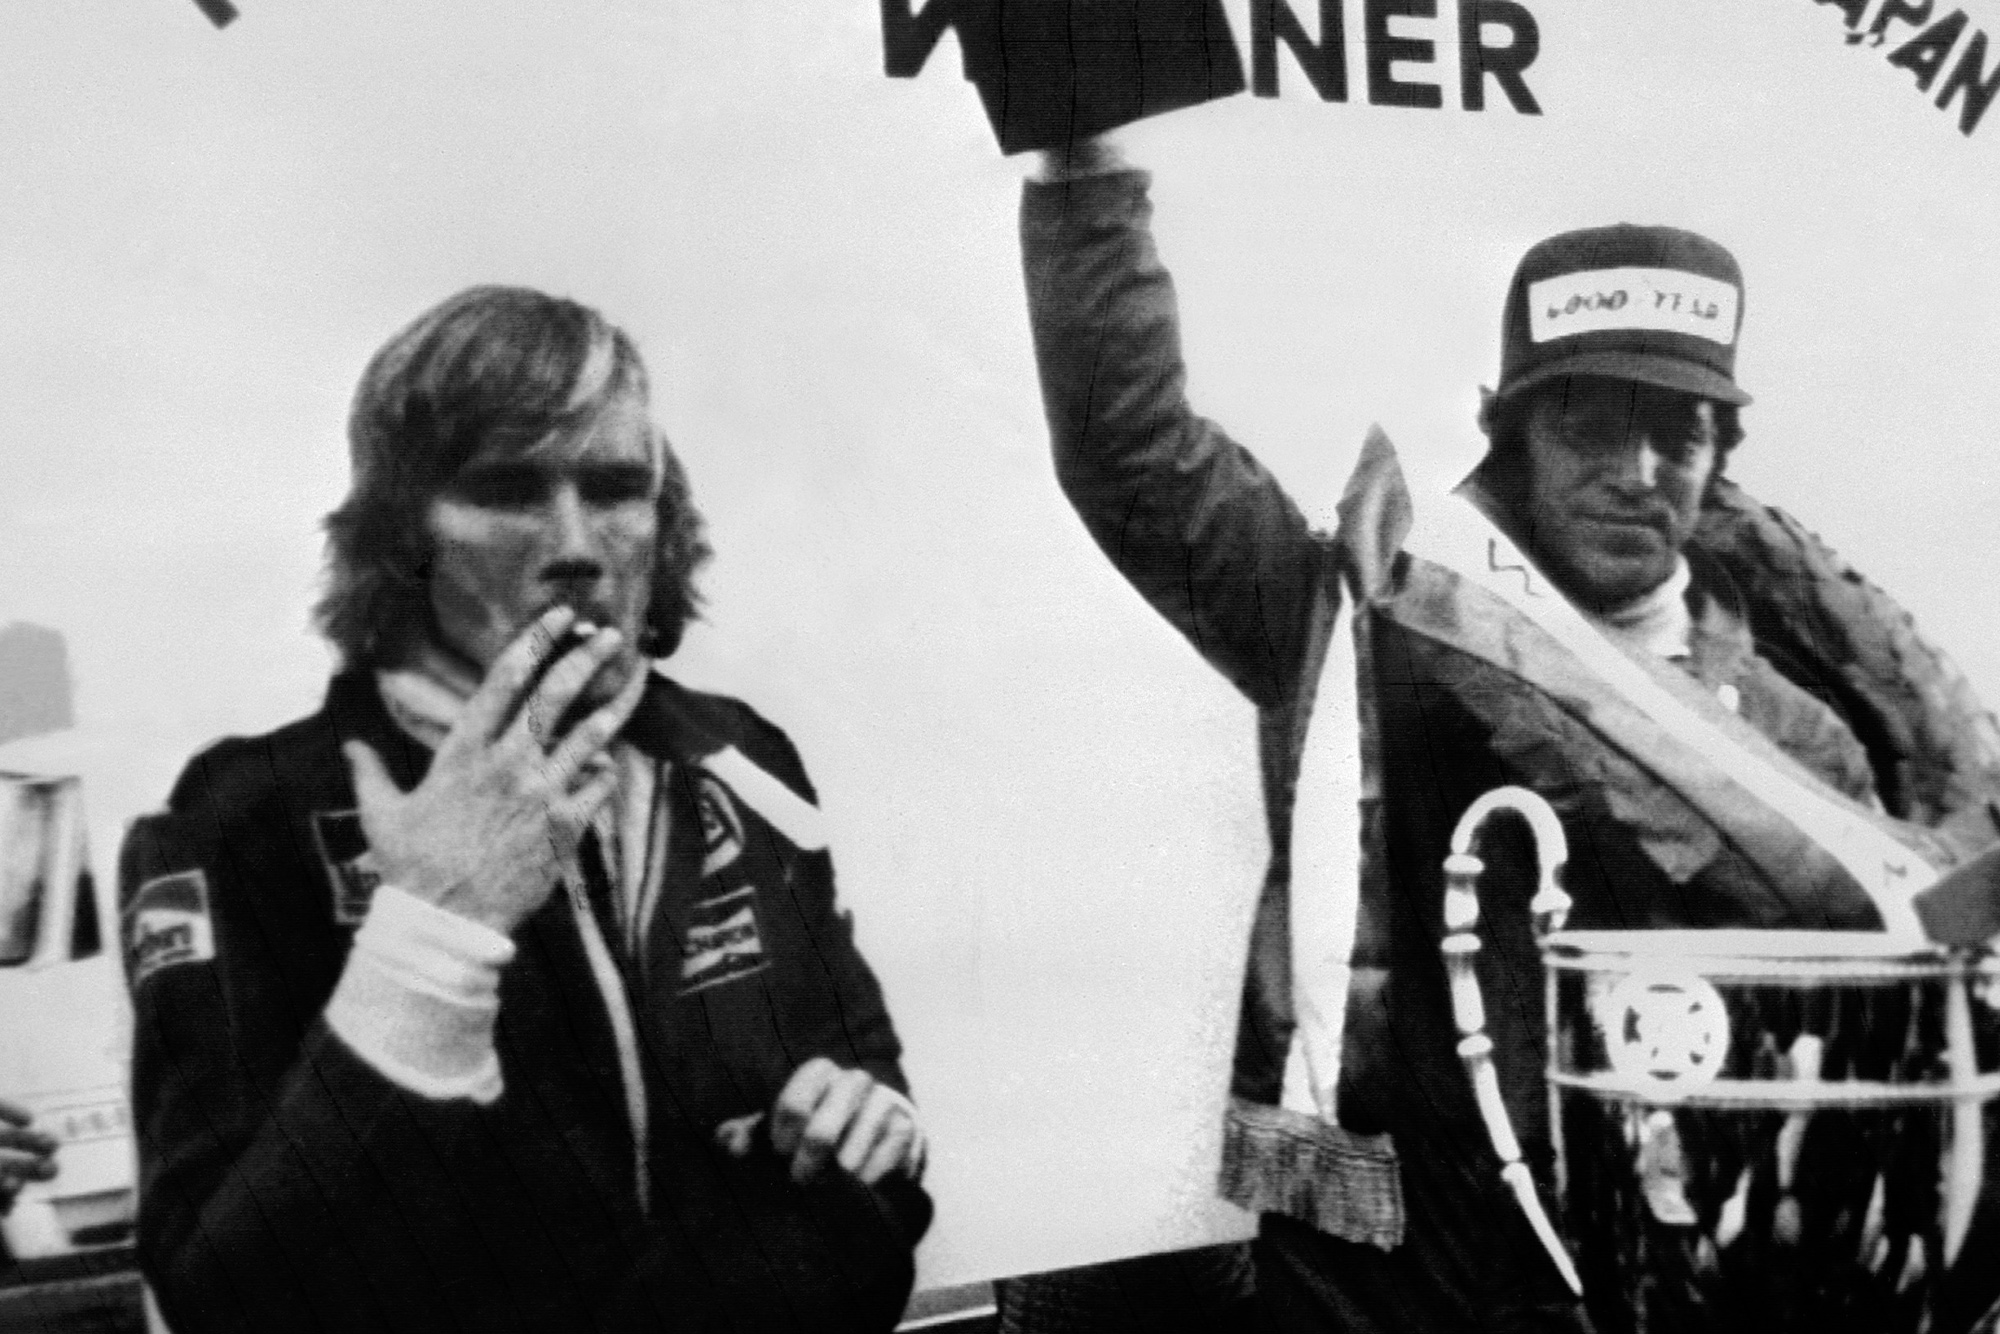 James Hunt smokes a cigarette as Mario Andretti celebrates winning the 1976 Japanese Grand Prix